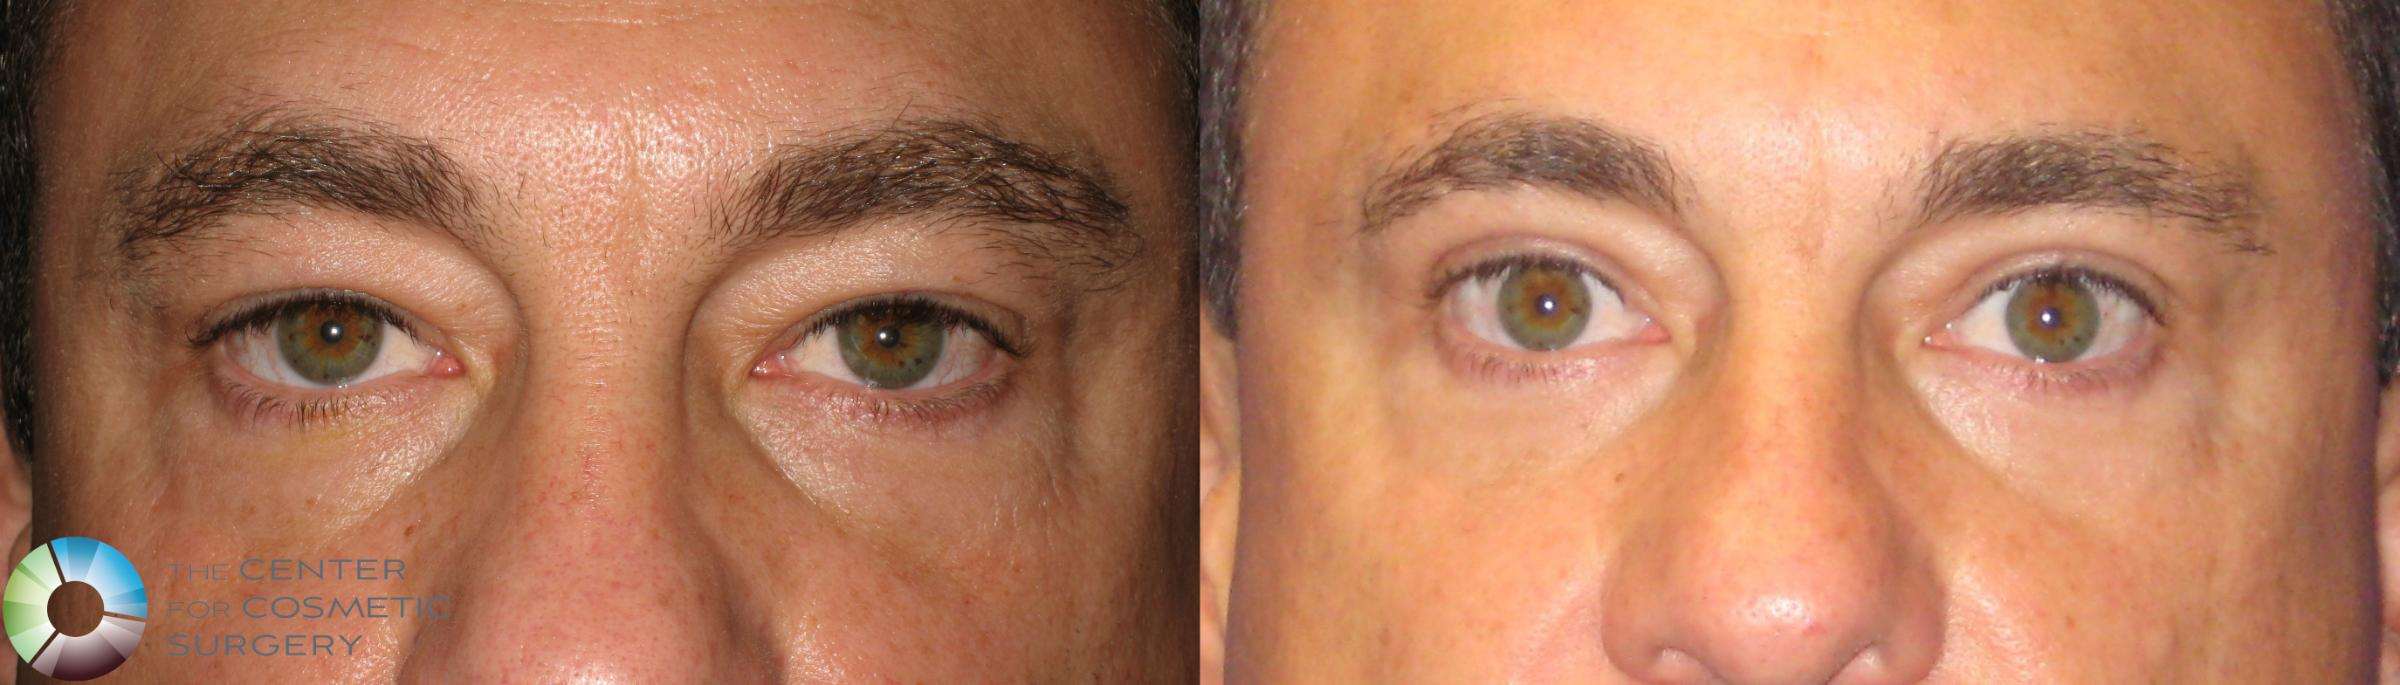 Eyelid Lift Case 237 Before & After View #1 | Golden, CO | The Center for Cosmetic Surgery